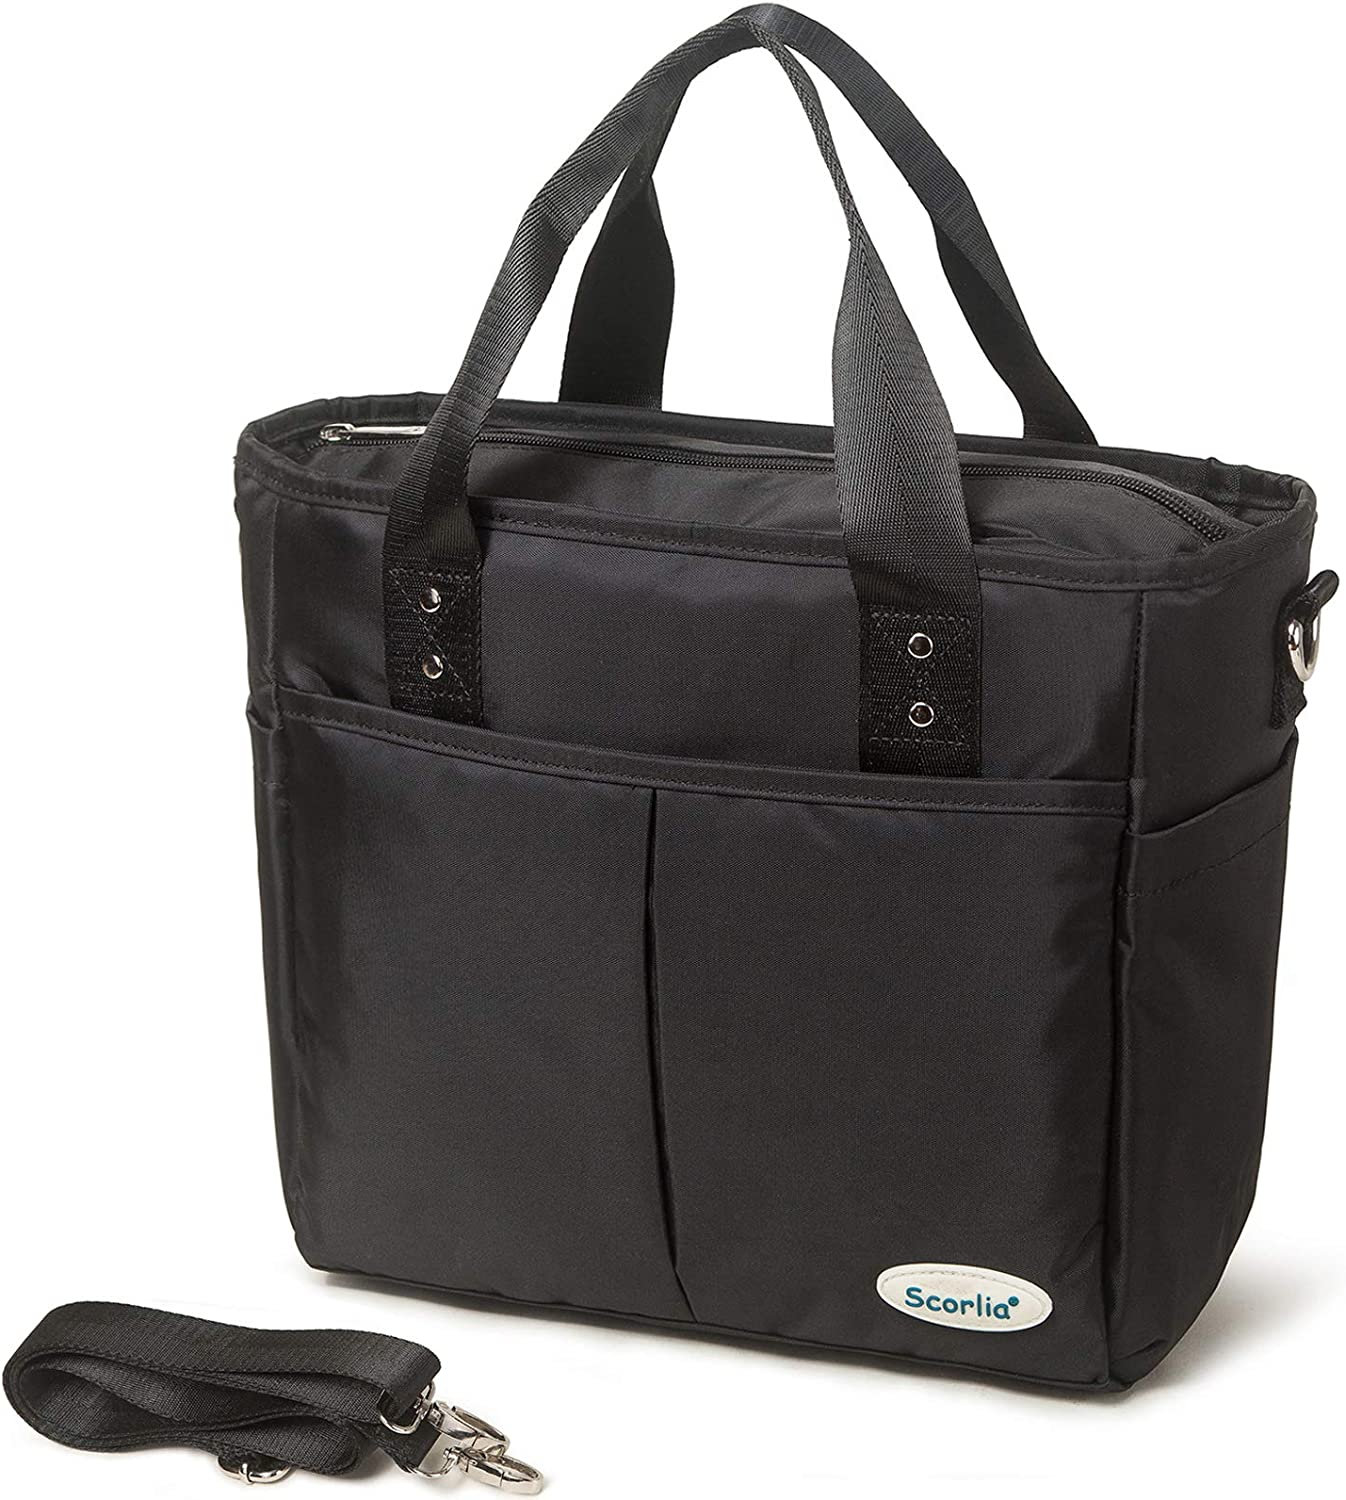 Insulated Lunch Bag, SCORLIA Extra Large Lunch Tote Bag With Removable Shoulder Strap, Durable Reusable Cooler lunch Box Bag with Side Pockets, Tall Drinks Holder for Women Men Work, Black